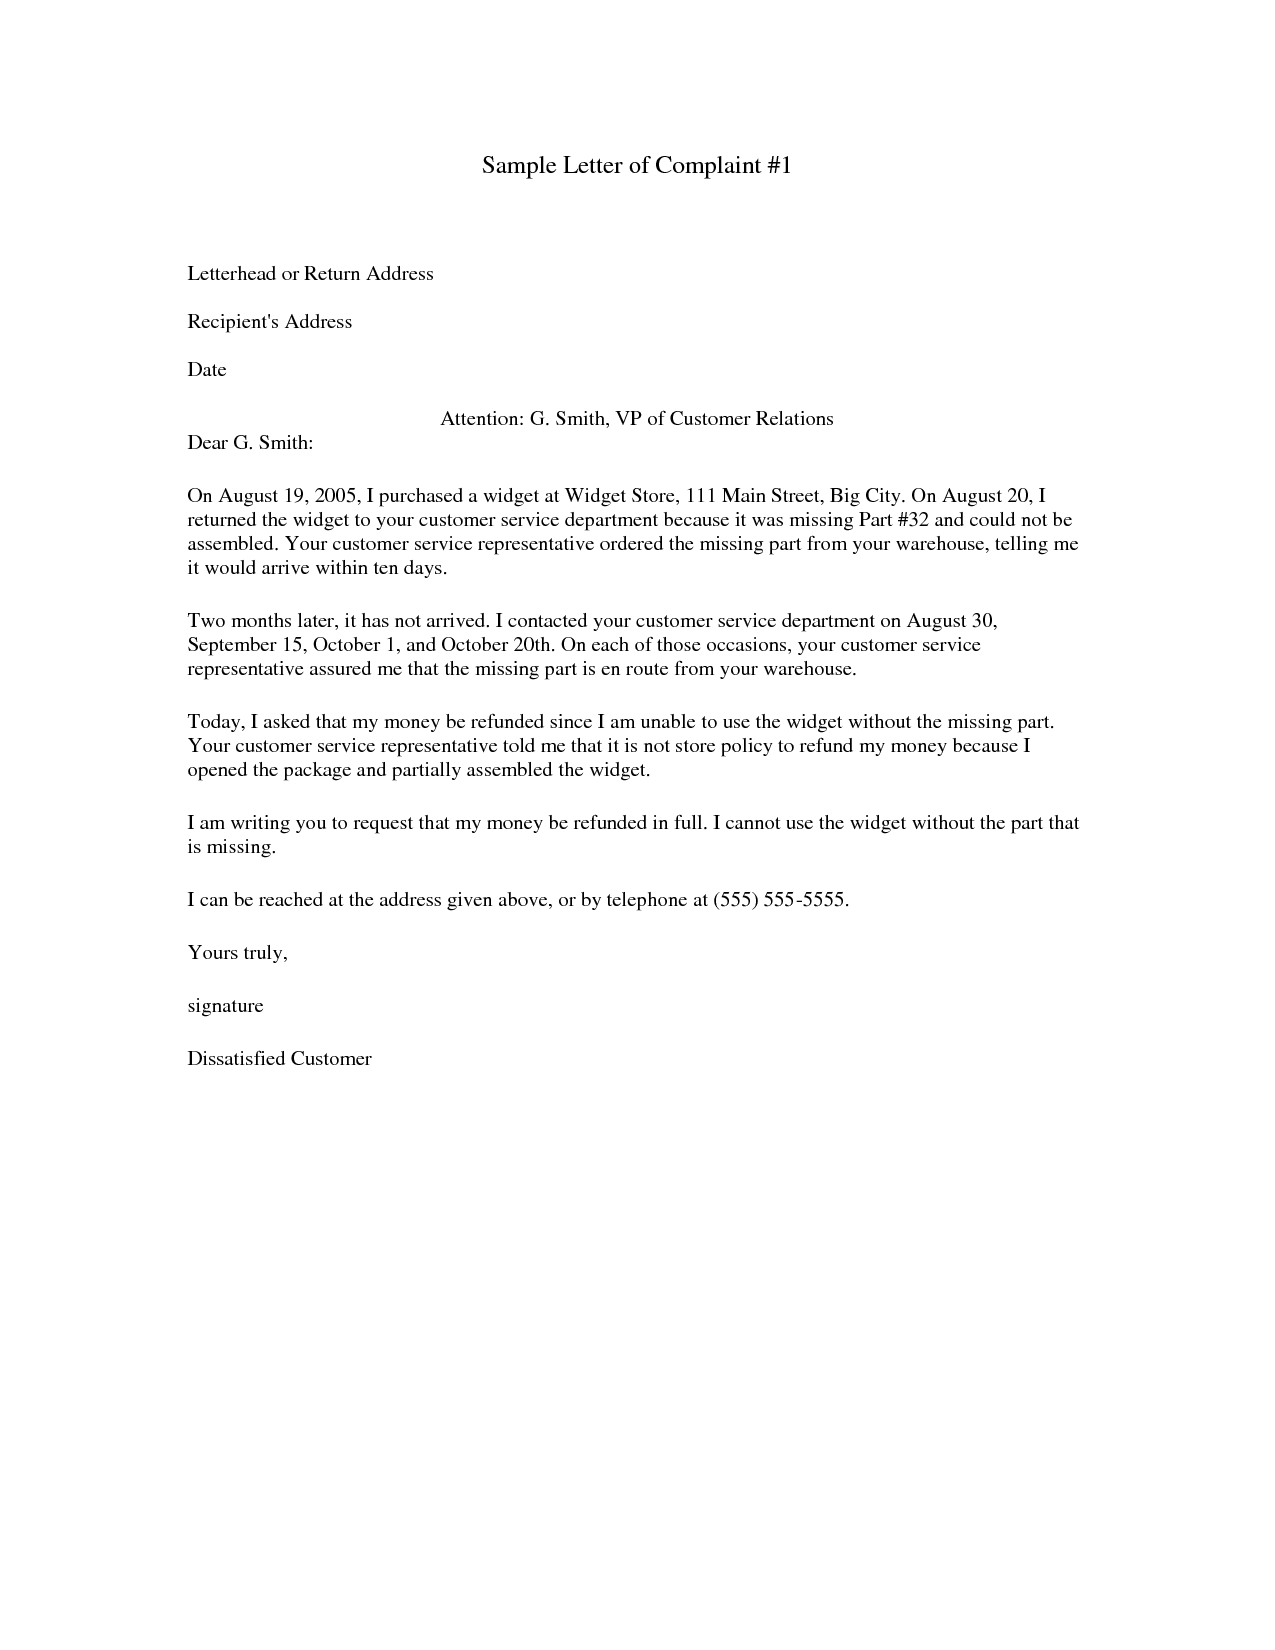 Refund Demand Letter Template - 20 Inspirational Letter Template Missing Documents